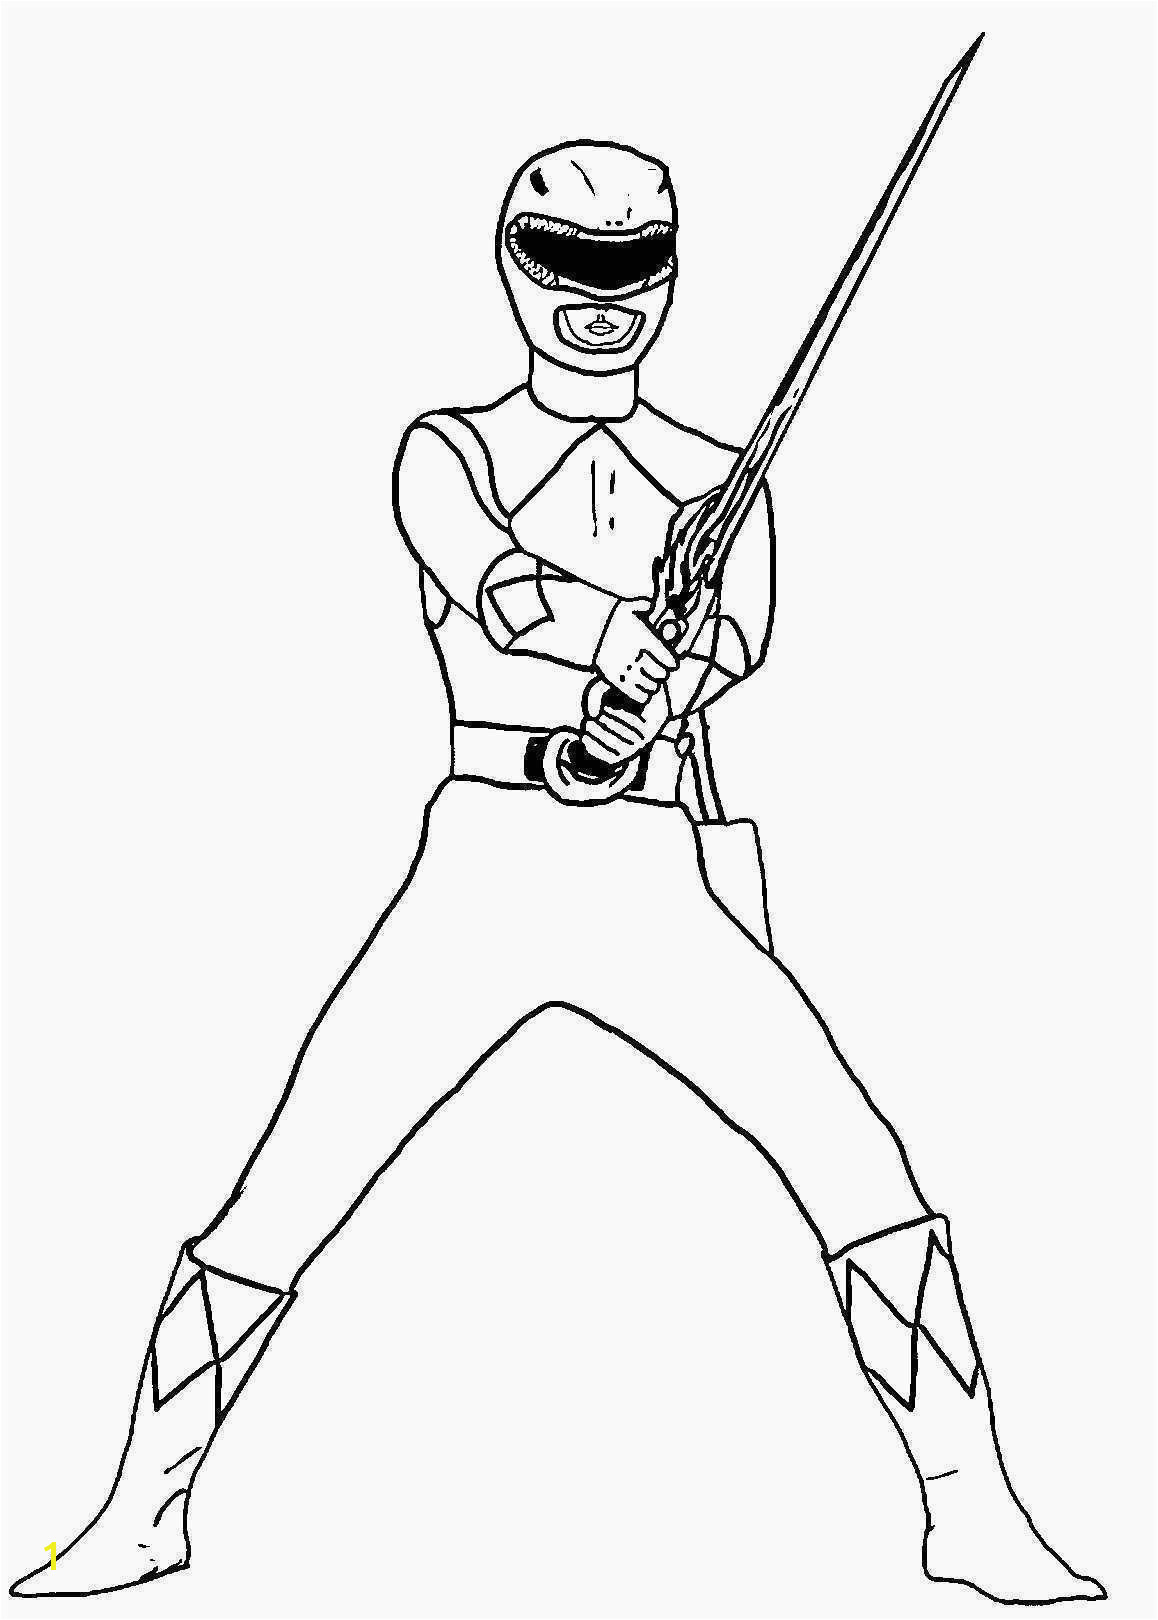 mighty morphin power rangers coloring pages mighty morphin power ranger coloring pages rangers power mighty morphin coloring pages